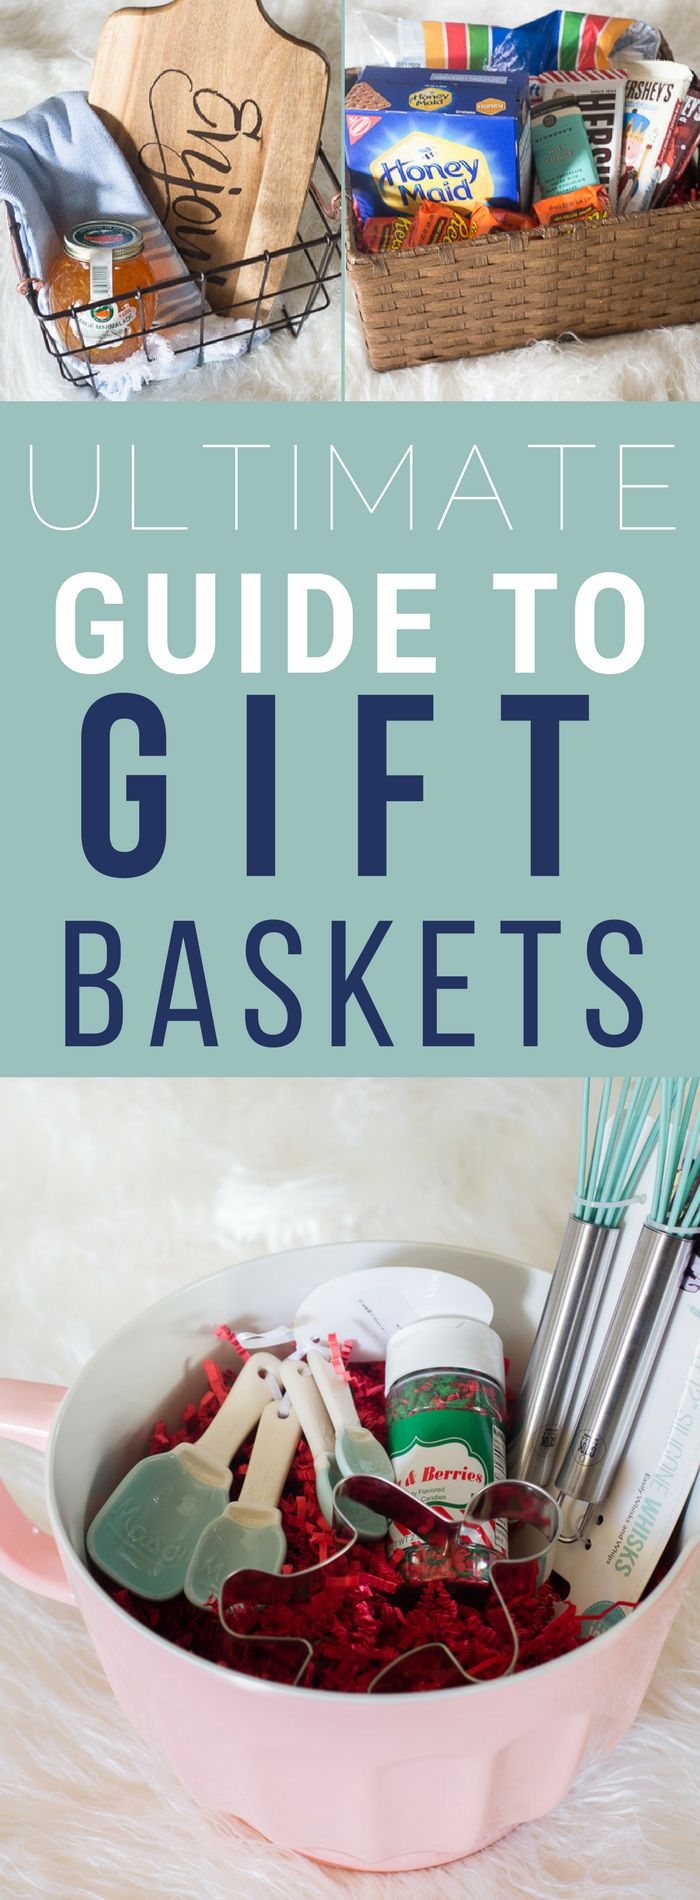 The ultimate guide to gift baskets - tons of creative gift basket ideas for everyone on your list. via @chelseacoulston